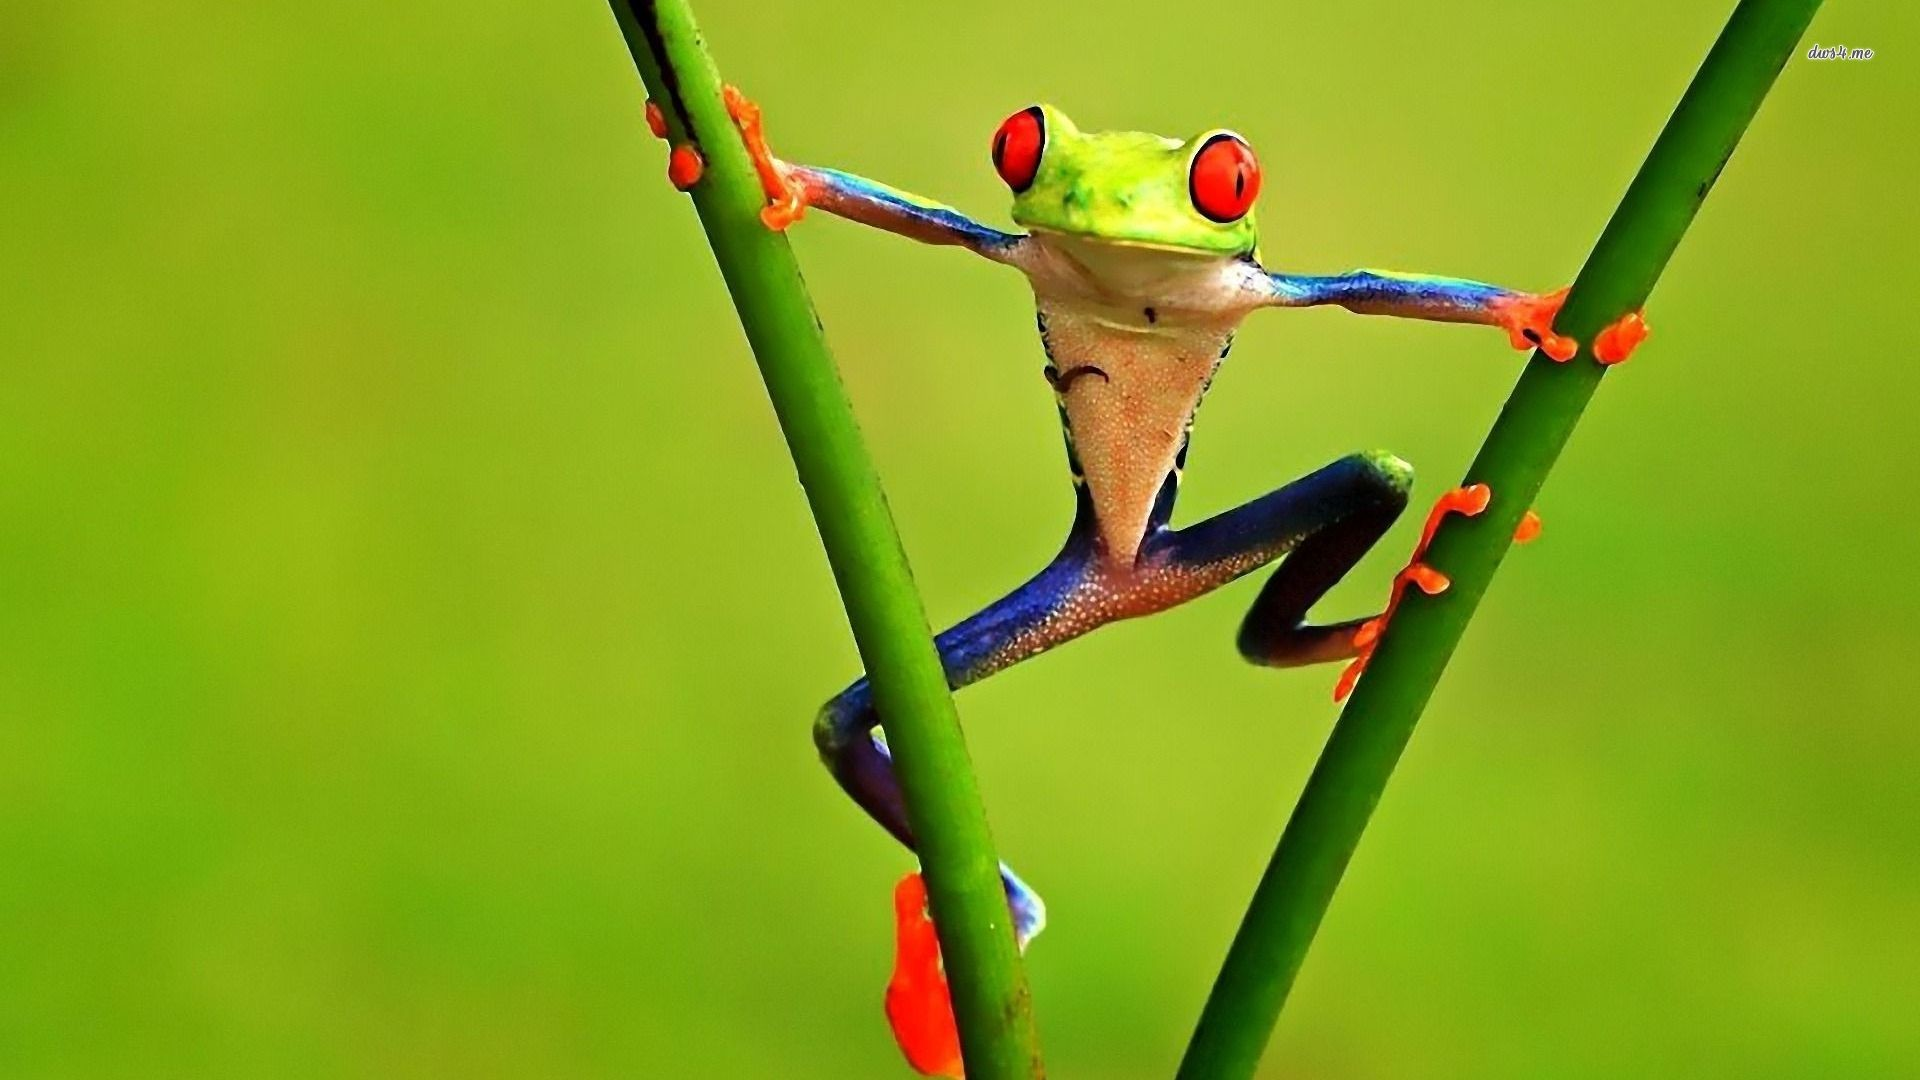 Res: 1920x1080, Funny frog wallpaper - Animal wallpapers - #25586